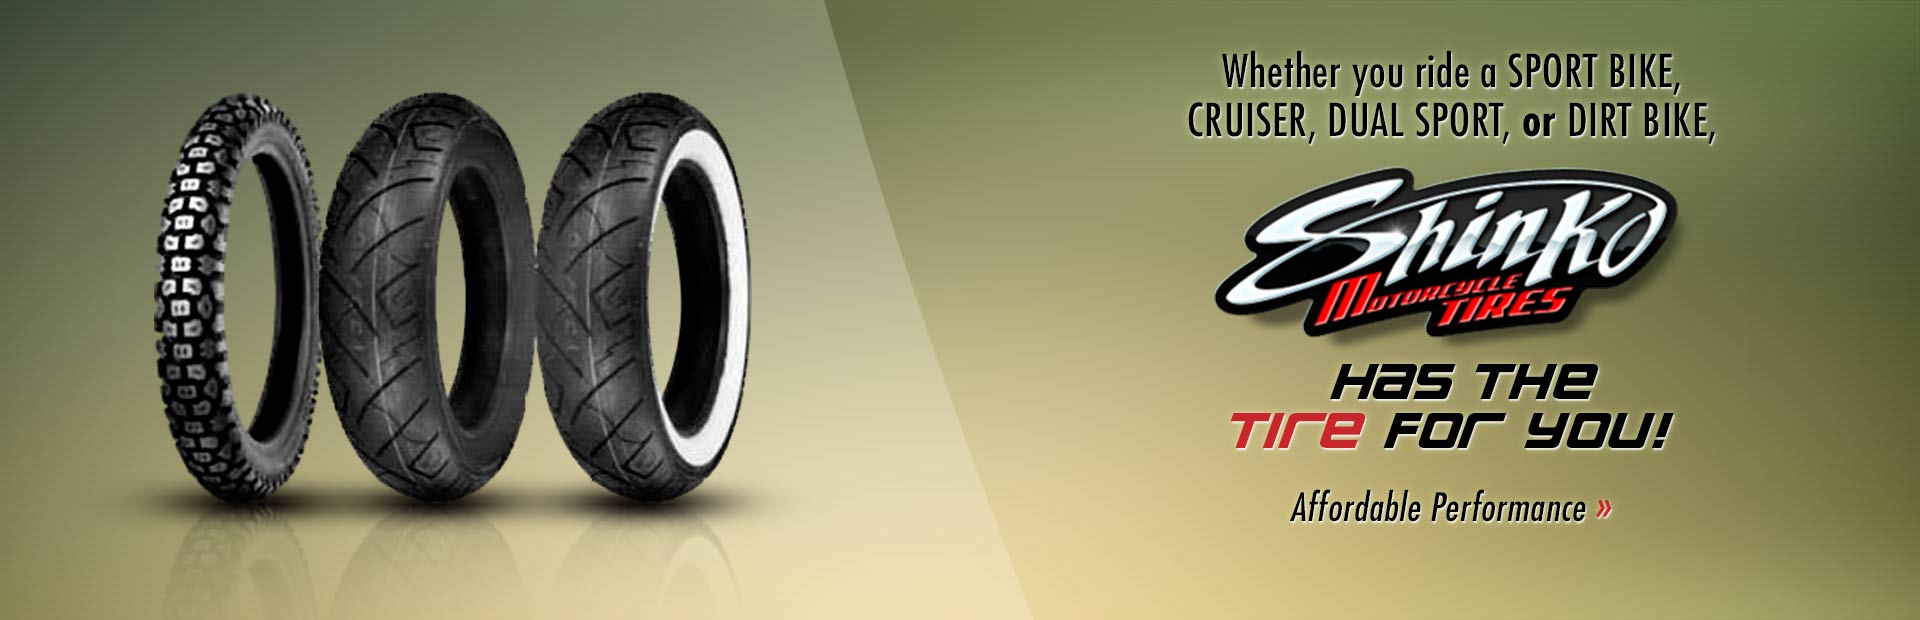 View Shinko tires online.